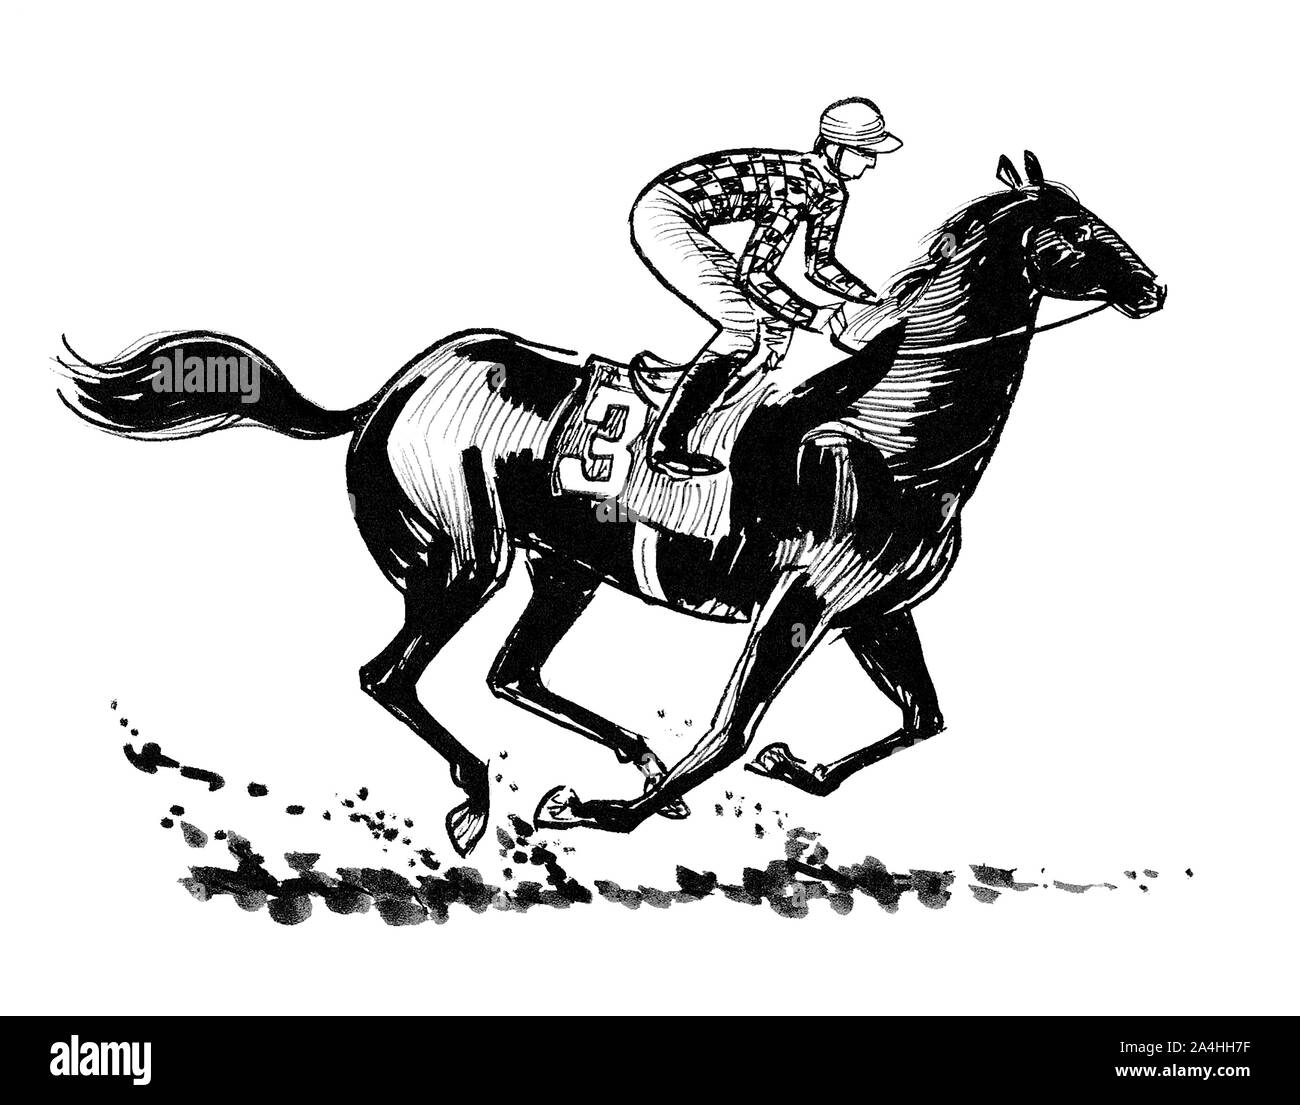 Jockey Riding A Horse Ink Black And White Drawing Stock Photo Alamy